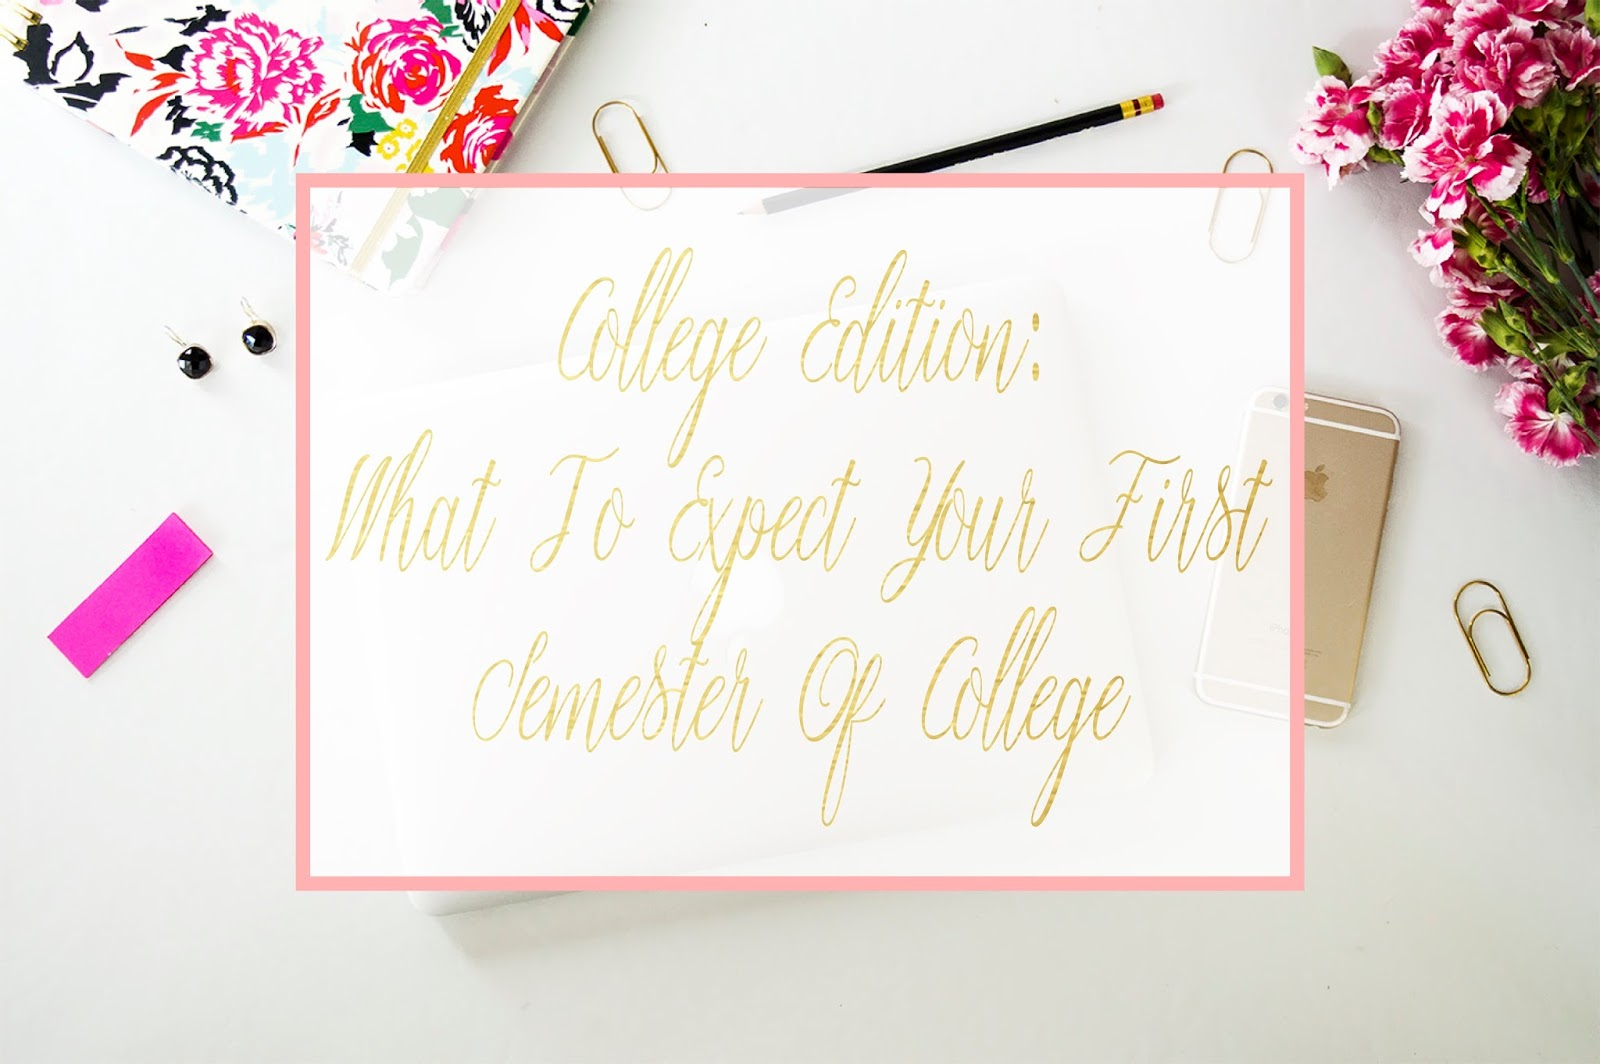 2016 xo destinee nicole college edition what to expect your first semester of college